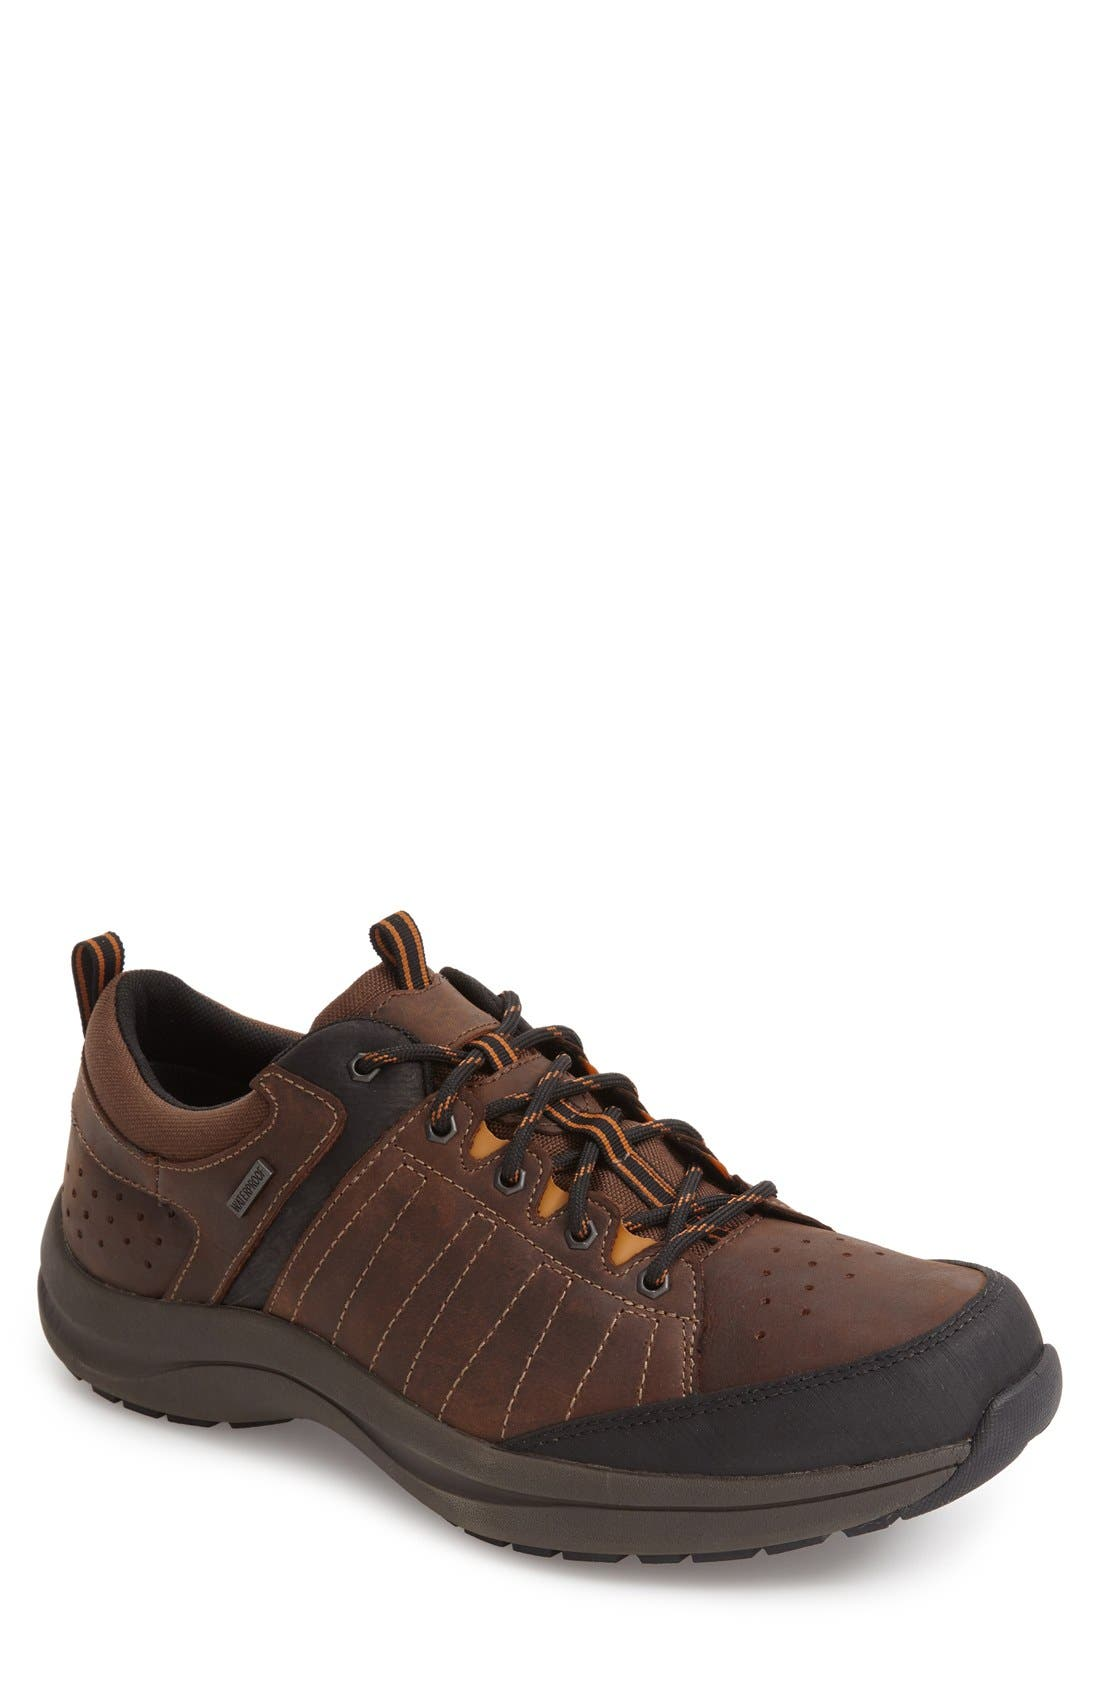 DUNHAM, Seth-Dun Waterproof Sneaker, Main thumbnail 1, color, BROWN LEATHER